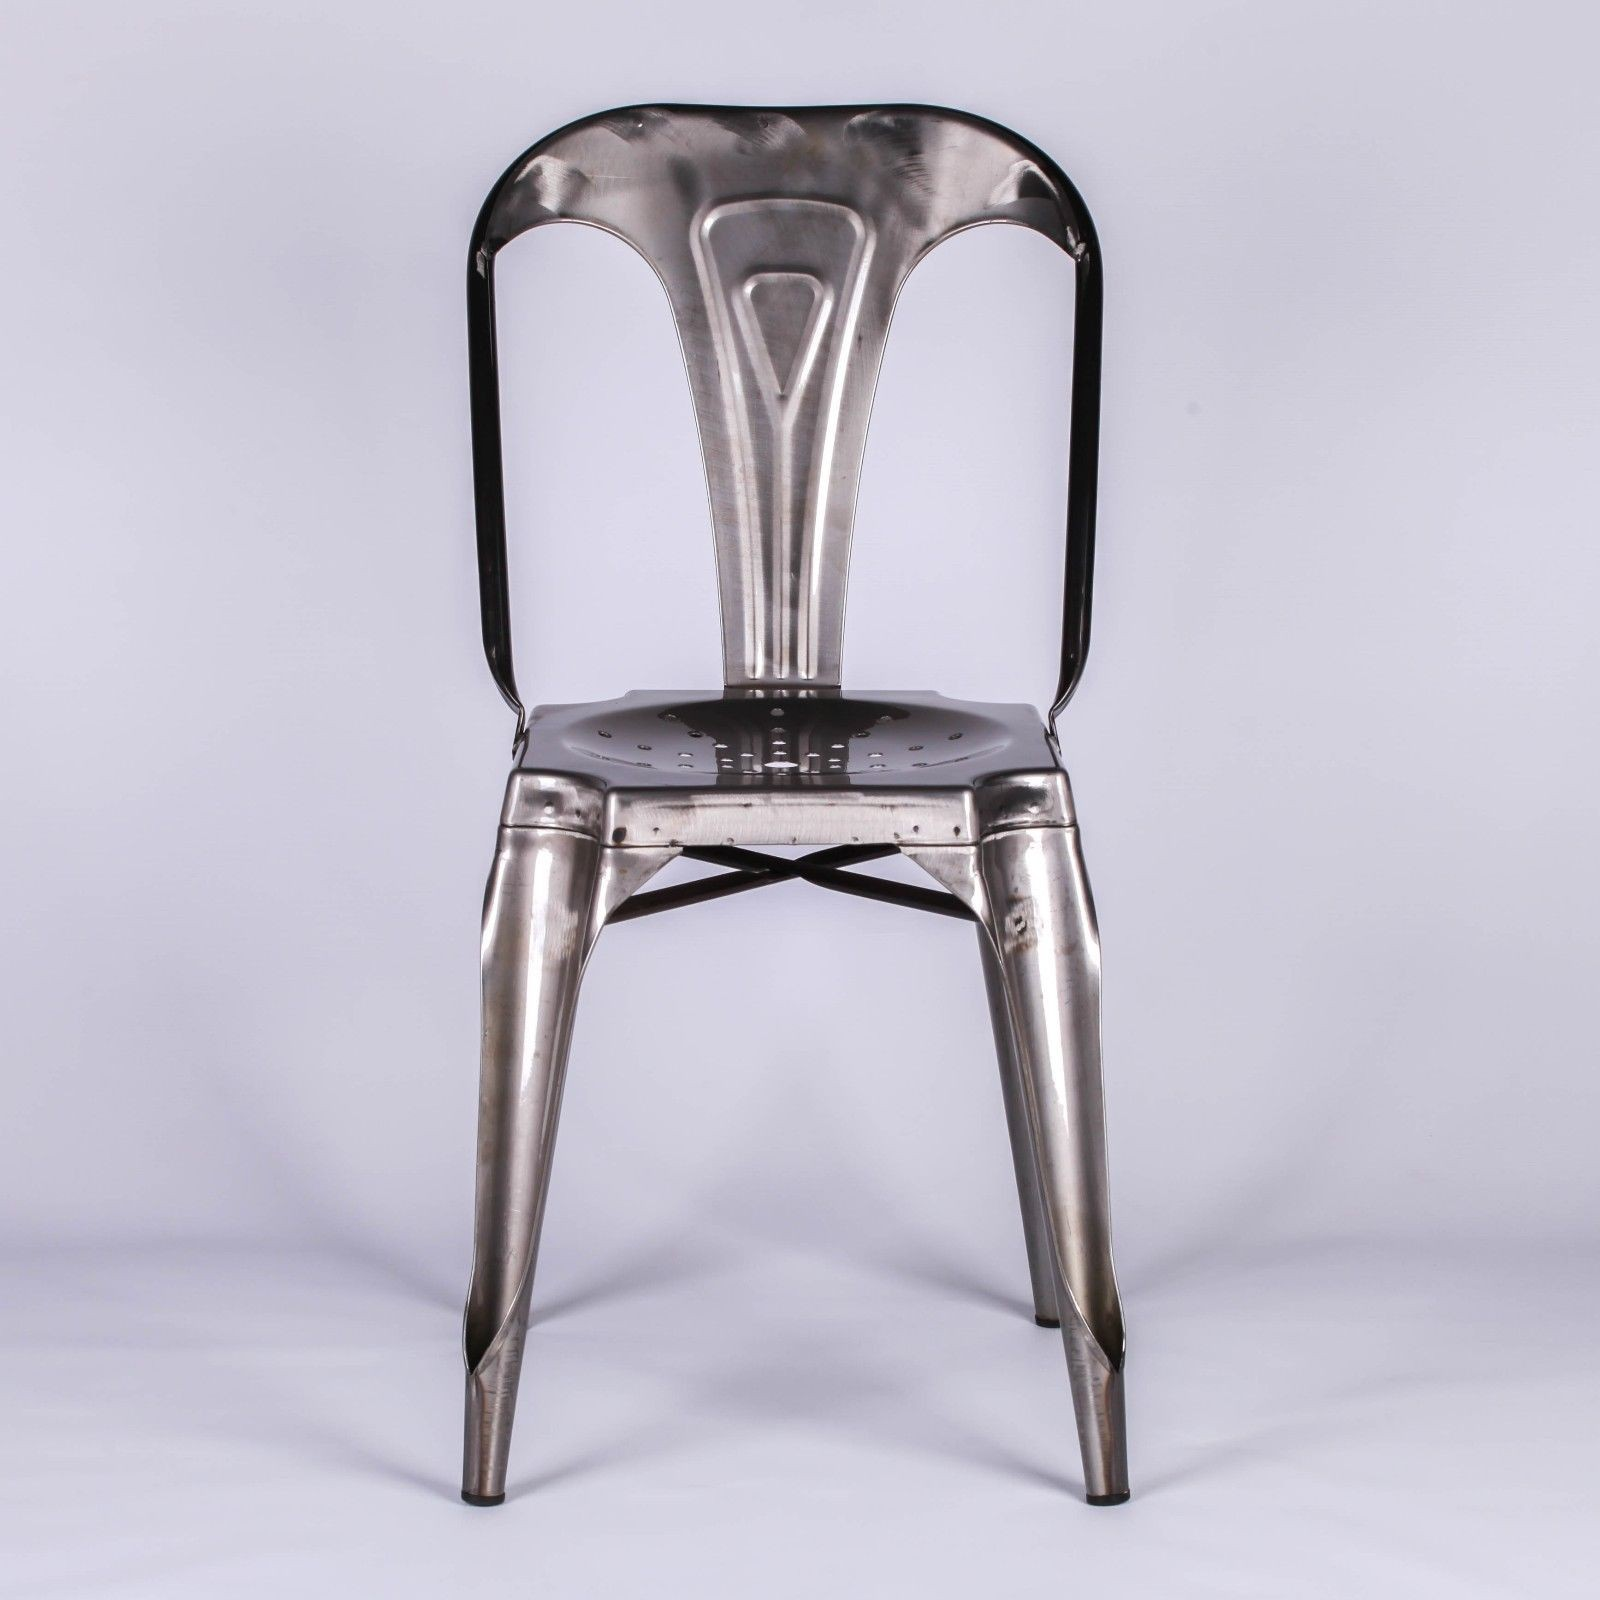 Industrial Look Chairs Industrial Cafe Style Metal Dining Chair Furniture La